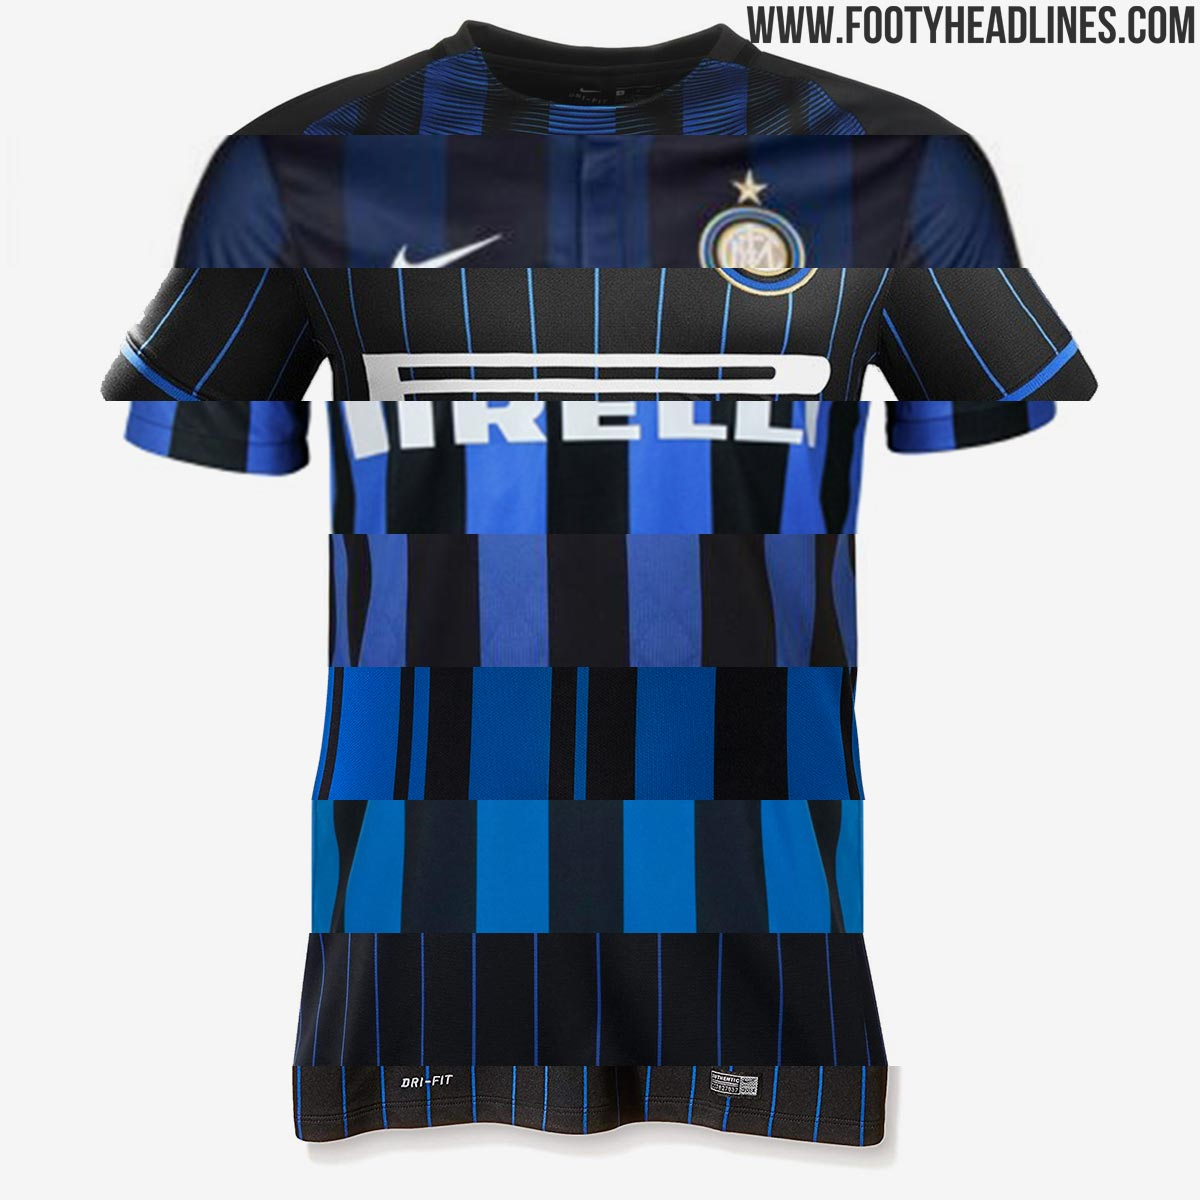 b10d840a465 The Nike Inter 20 Years jersey celebrates the 20th anniversary of the  sponsorship with a crazy design that combines elements of several key Nike  Inter Milan ...